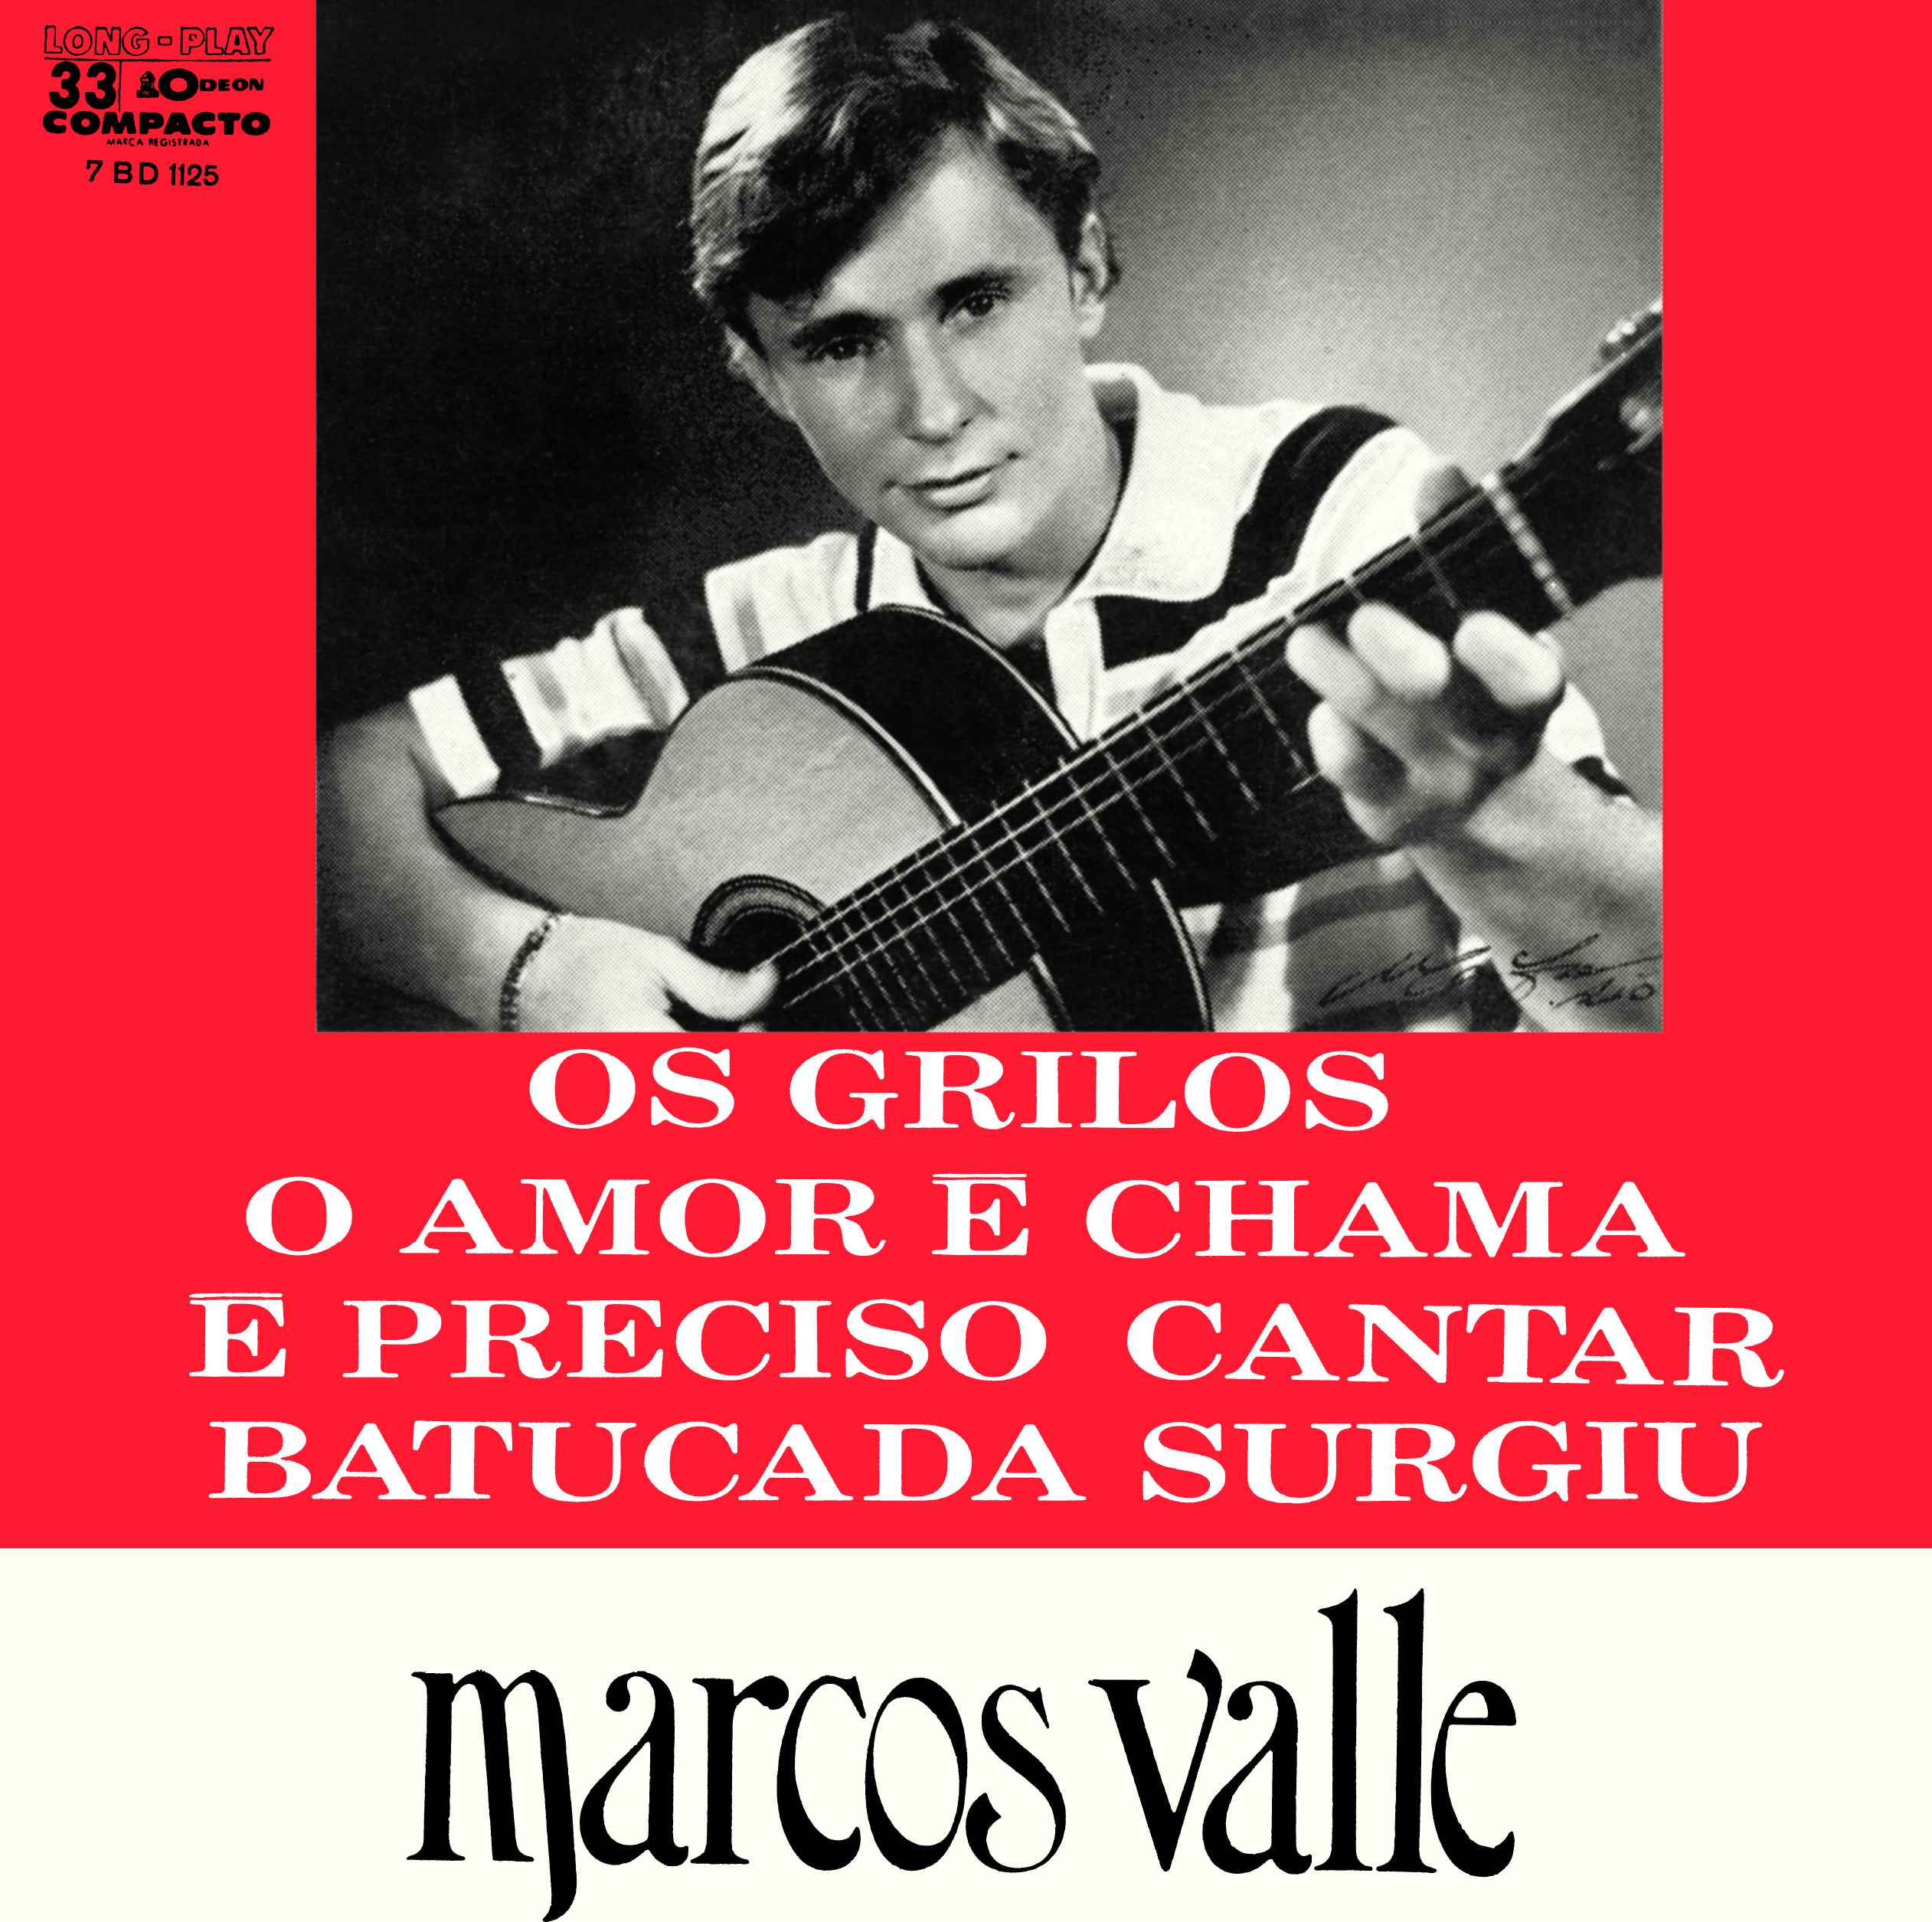 MARCOS VALLE / OS GRILOS